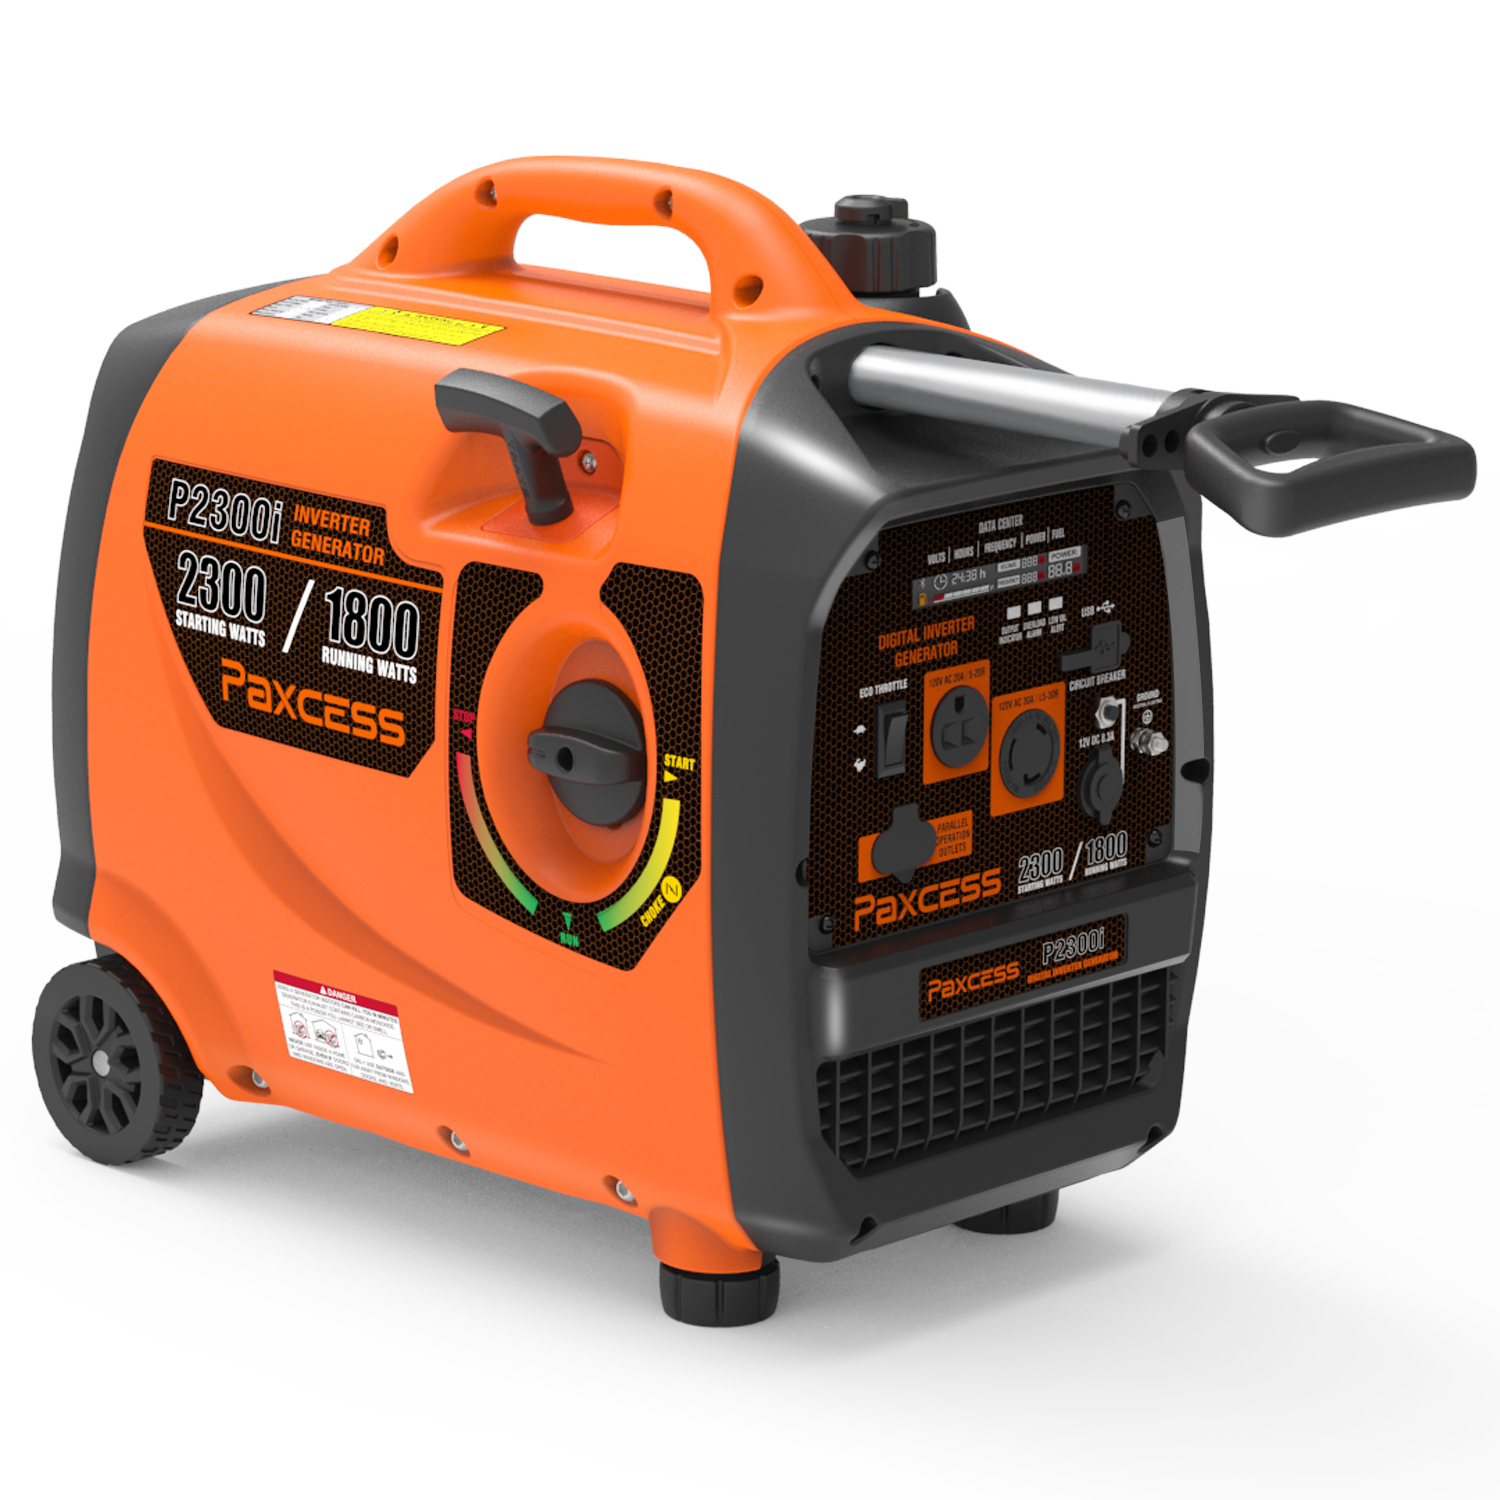 Paxcess 2300 Watts Portable Generator CARB Complaint Inverter Generator With Wheel and Handle RV /Parallel Ready Generator For HOME, Camping, Travel, Emergency.